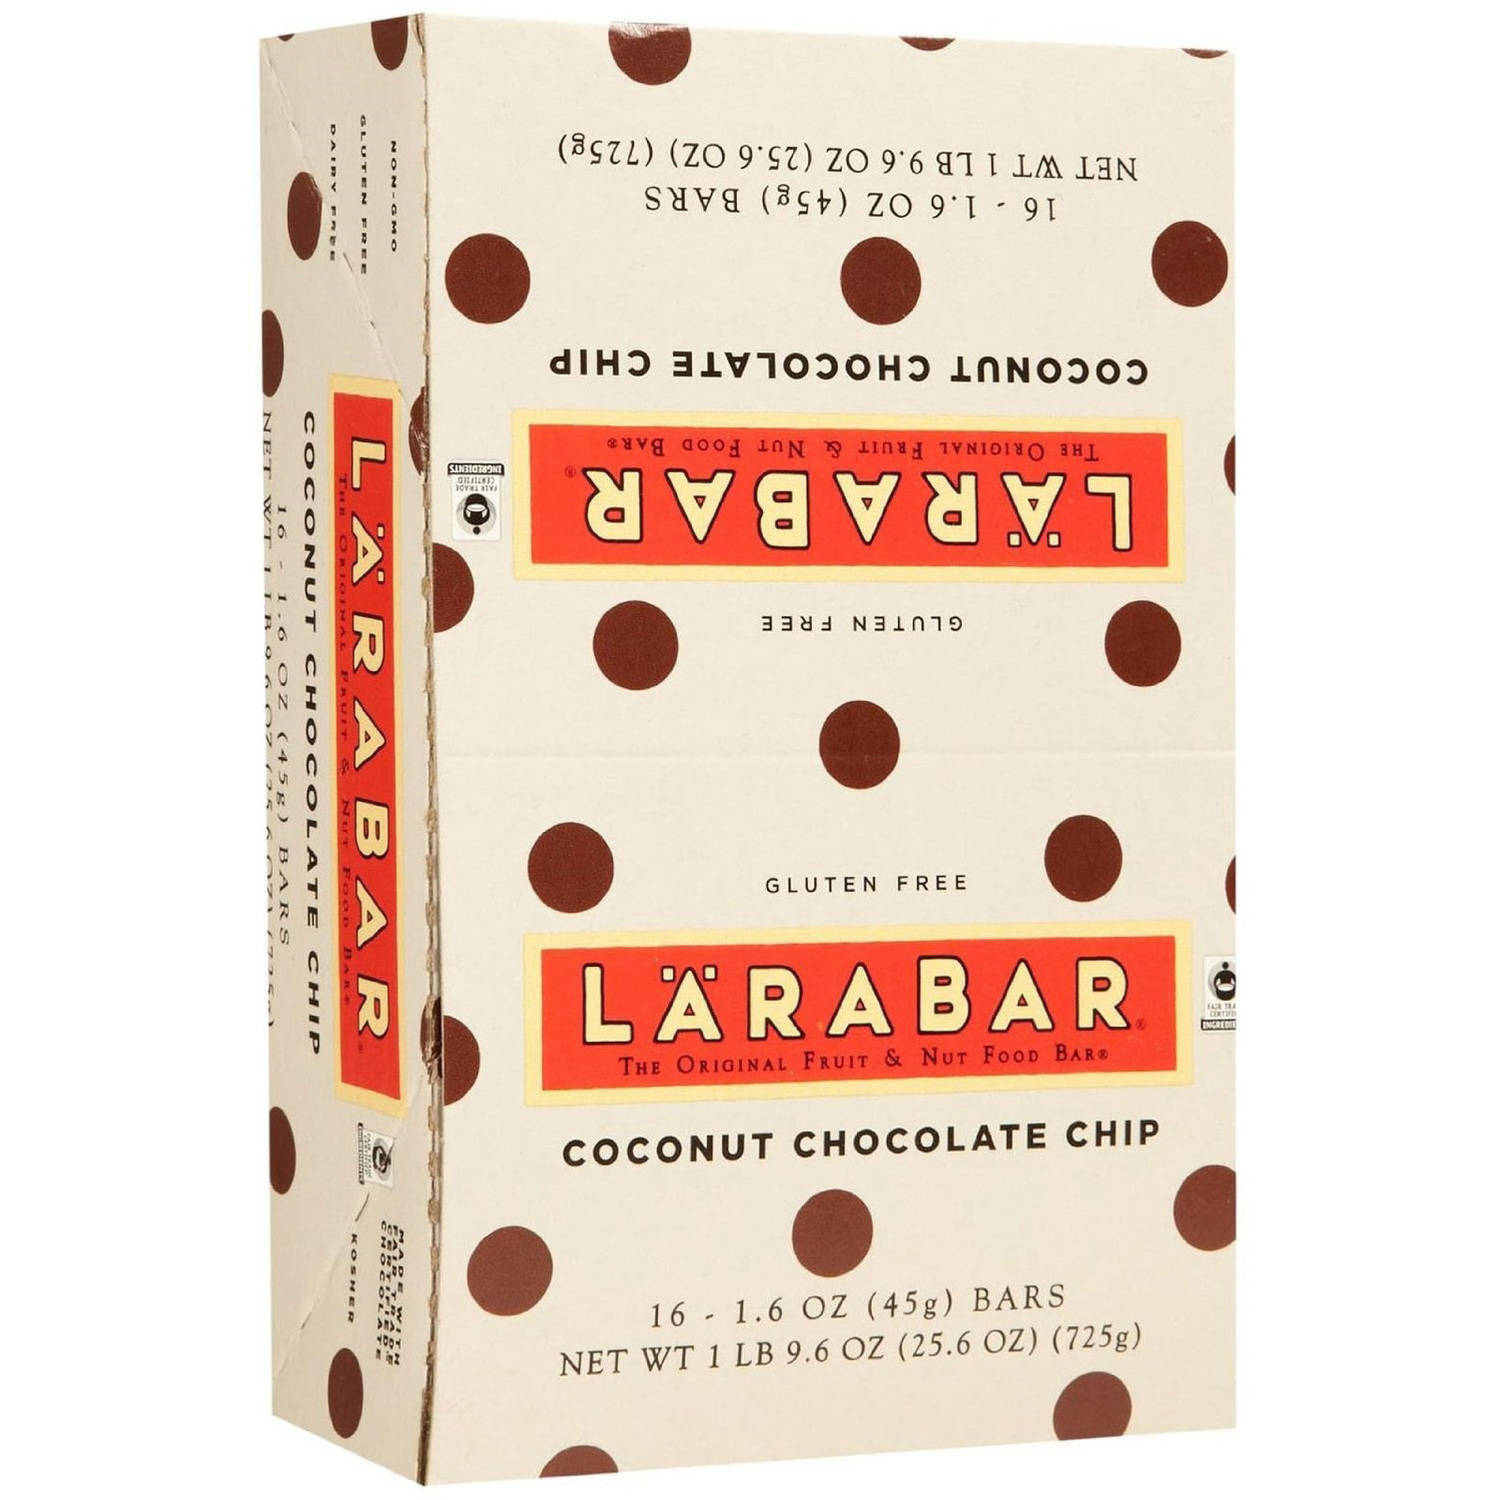 Larabar Coconut Chocolate Chip Fruit & Nut Food Bars, 1.6 oz, 16 count